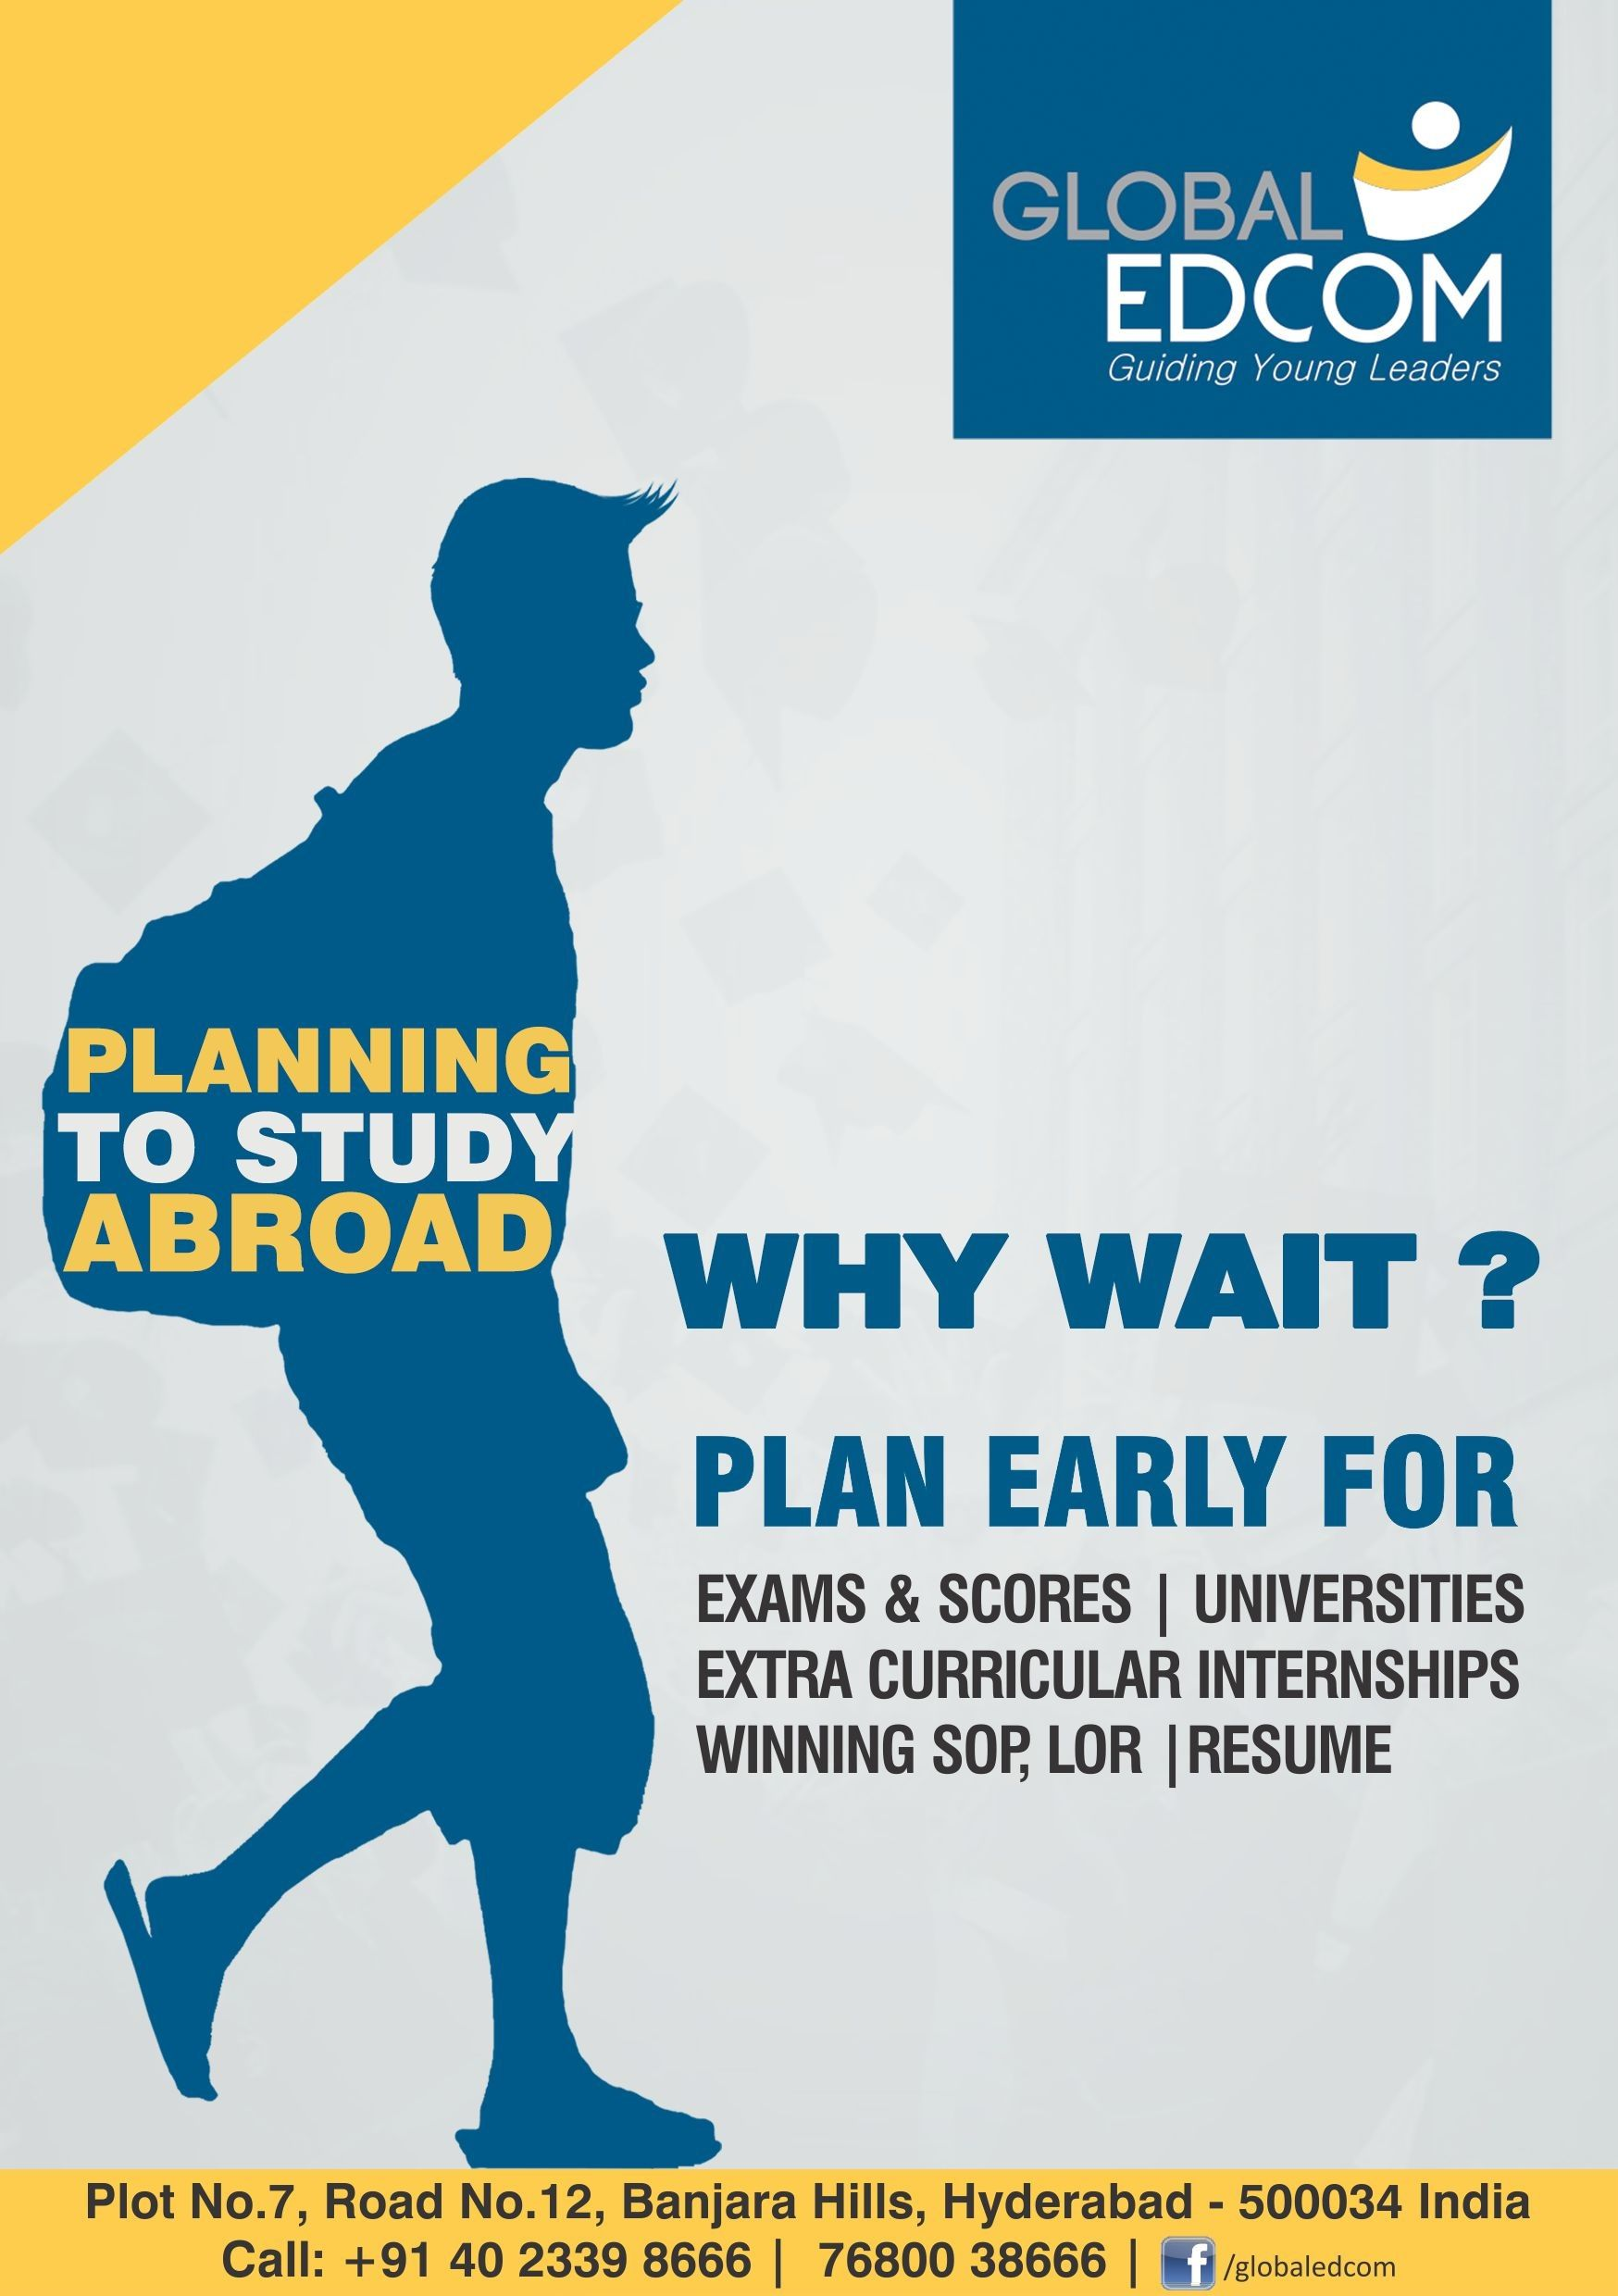 Planning to study abroad WHY WAIT?? studyabroad